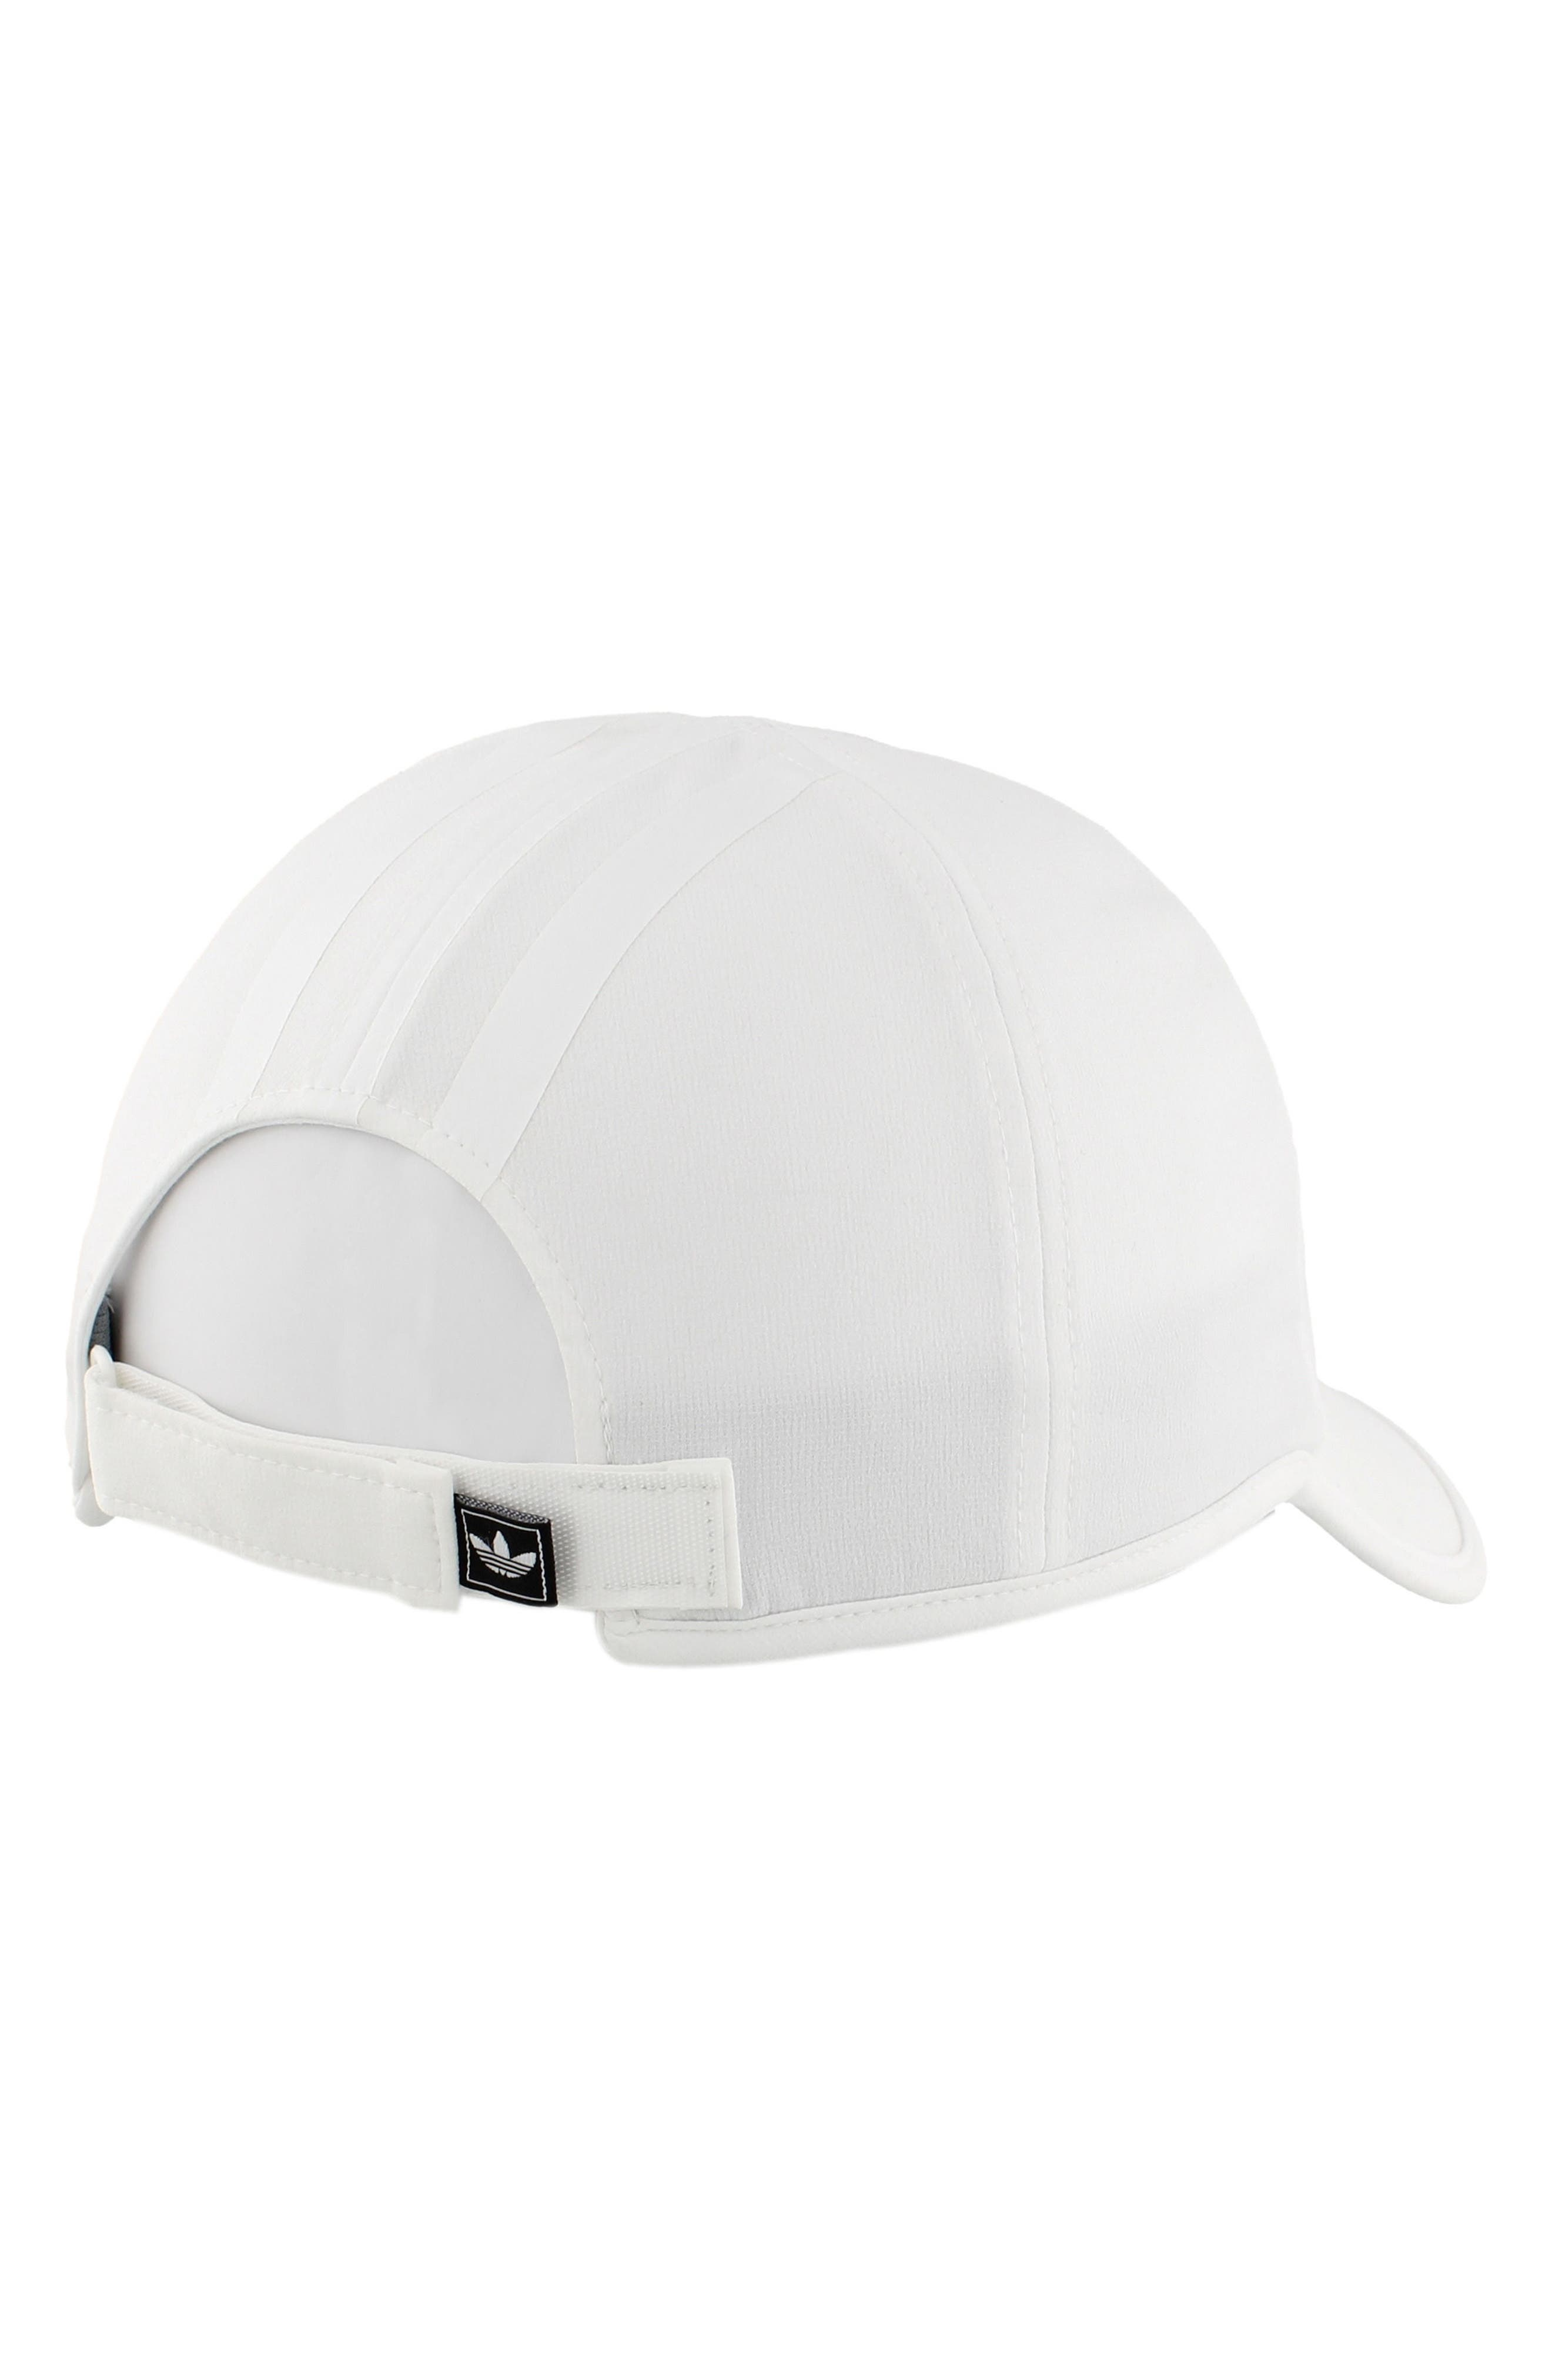 EQT Trainer Cap,                             Alternate thumbnail 4, color,                             White